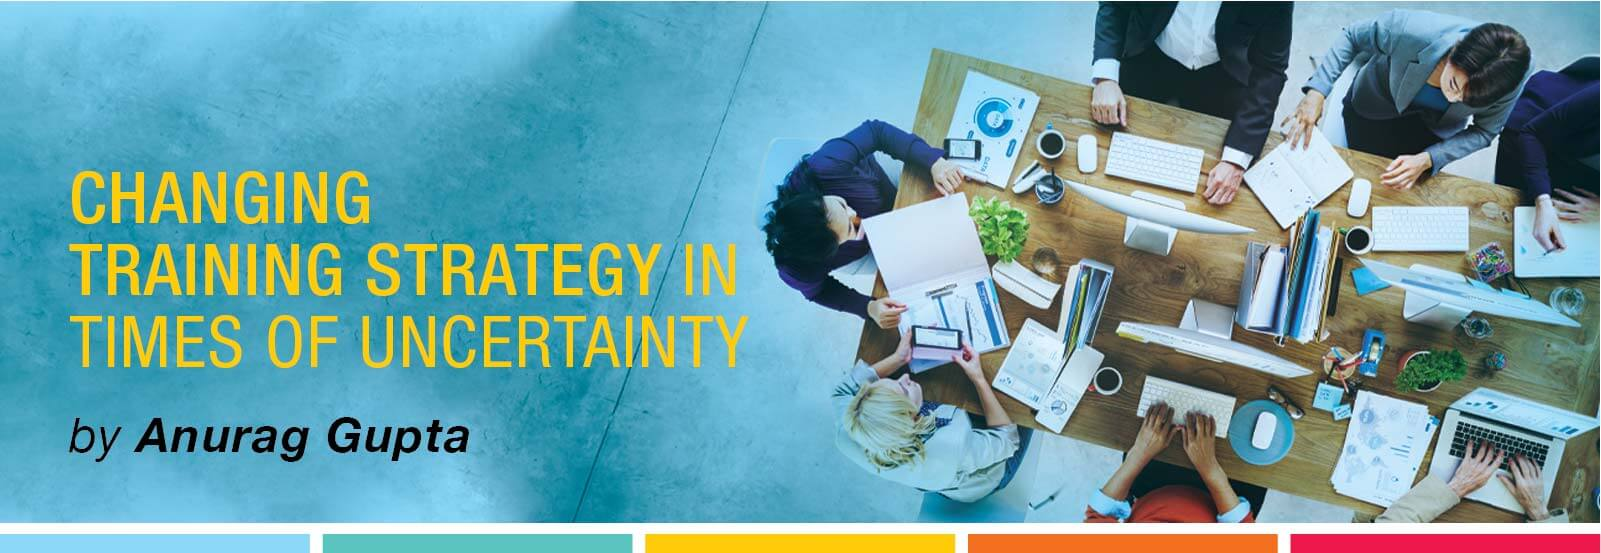 Changing training strategy in times of uncertainty